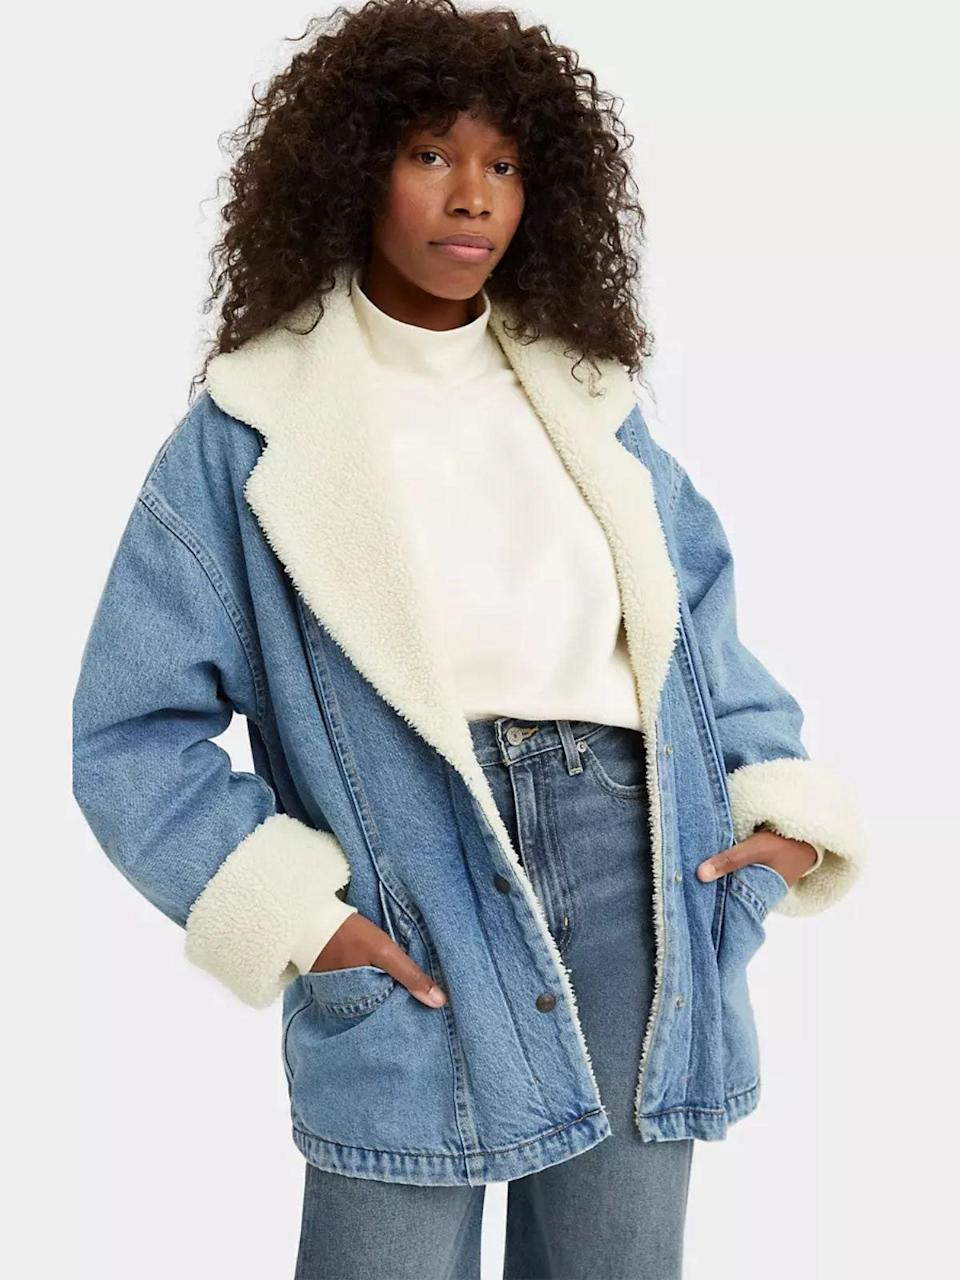 """Not ready to give up your denim jacket for colder temps? No worries—with this one, you won't have to. $178, Levi's. <a href=""""https://www.levi.com/US/en_US/clothing/women/outerwear/retro-collar-sherpa-jacket/p/A08210000"""" rel=""""nofollow noopener"""" target=""""_blank"""" data-ylk=""""slk:Get it now!"""" class=""""link rapid-noclick-resp"""">Get it now!</a>"""